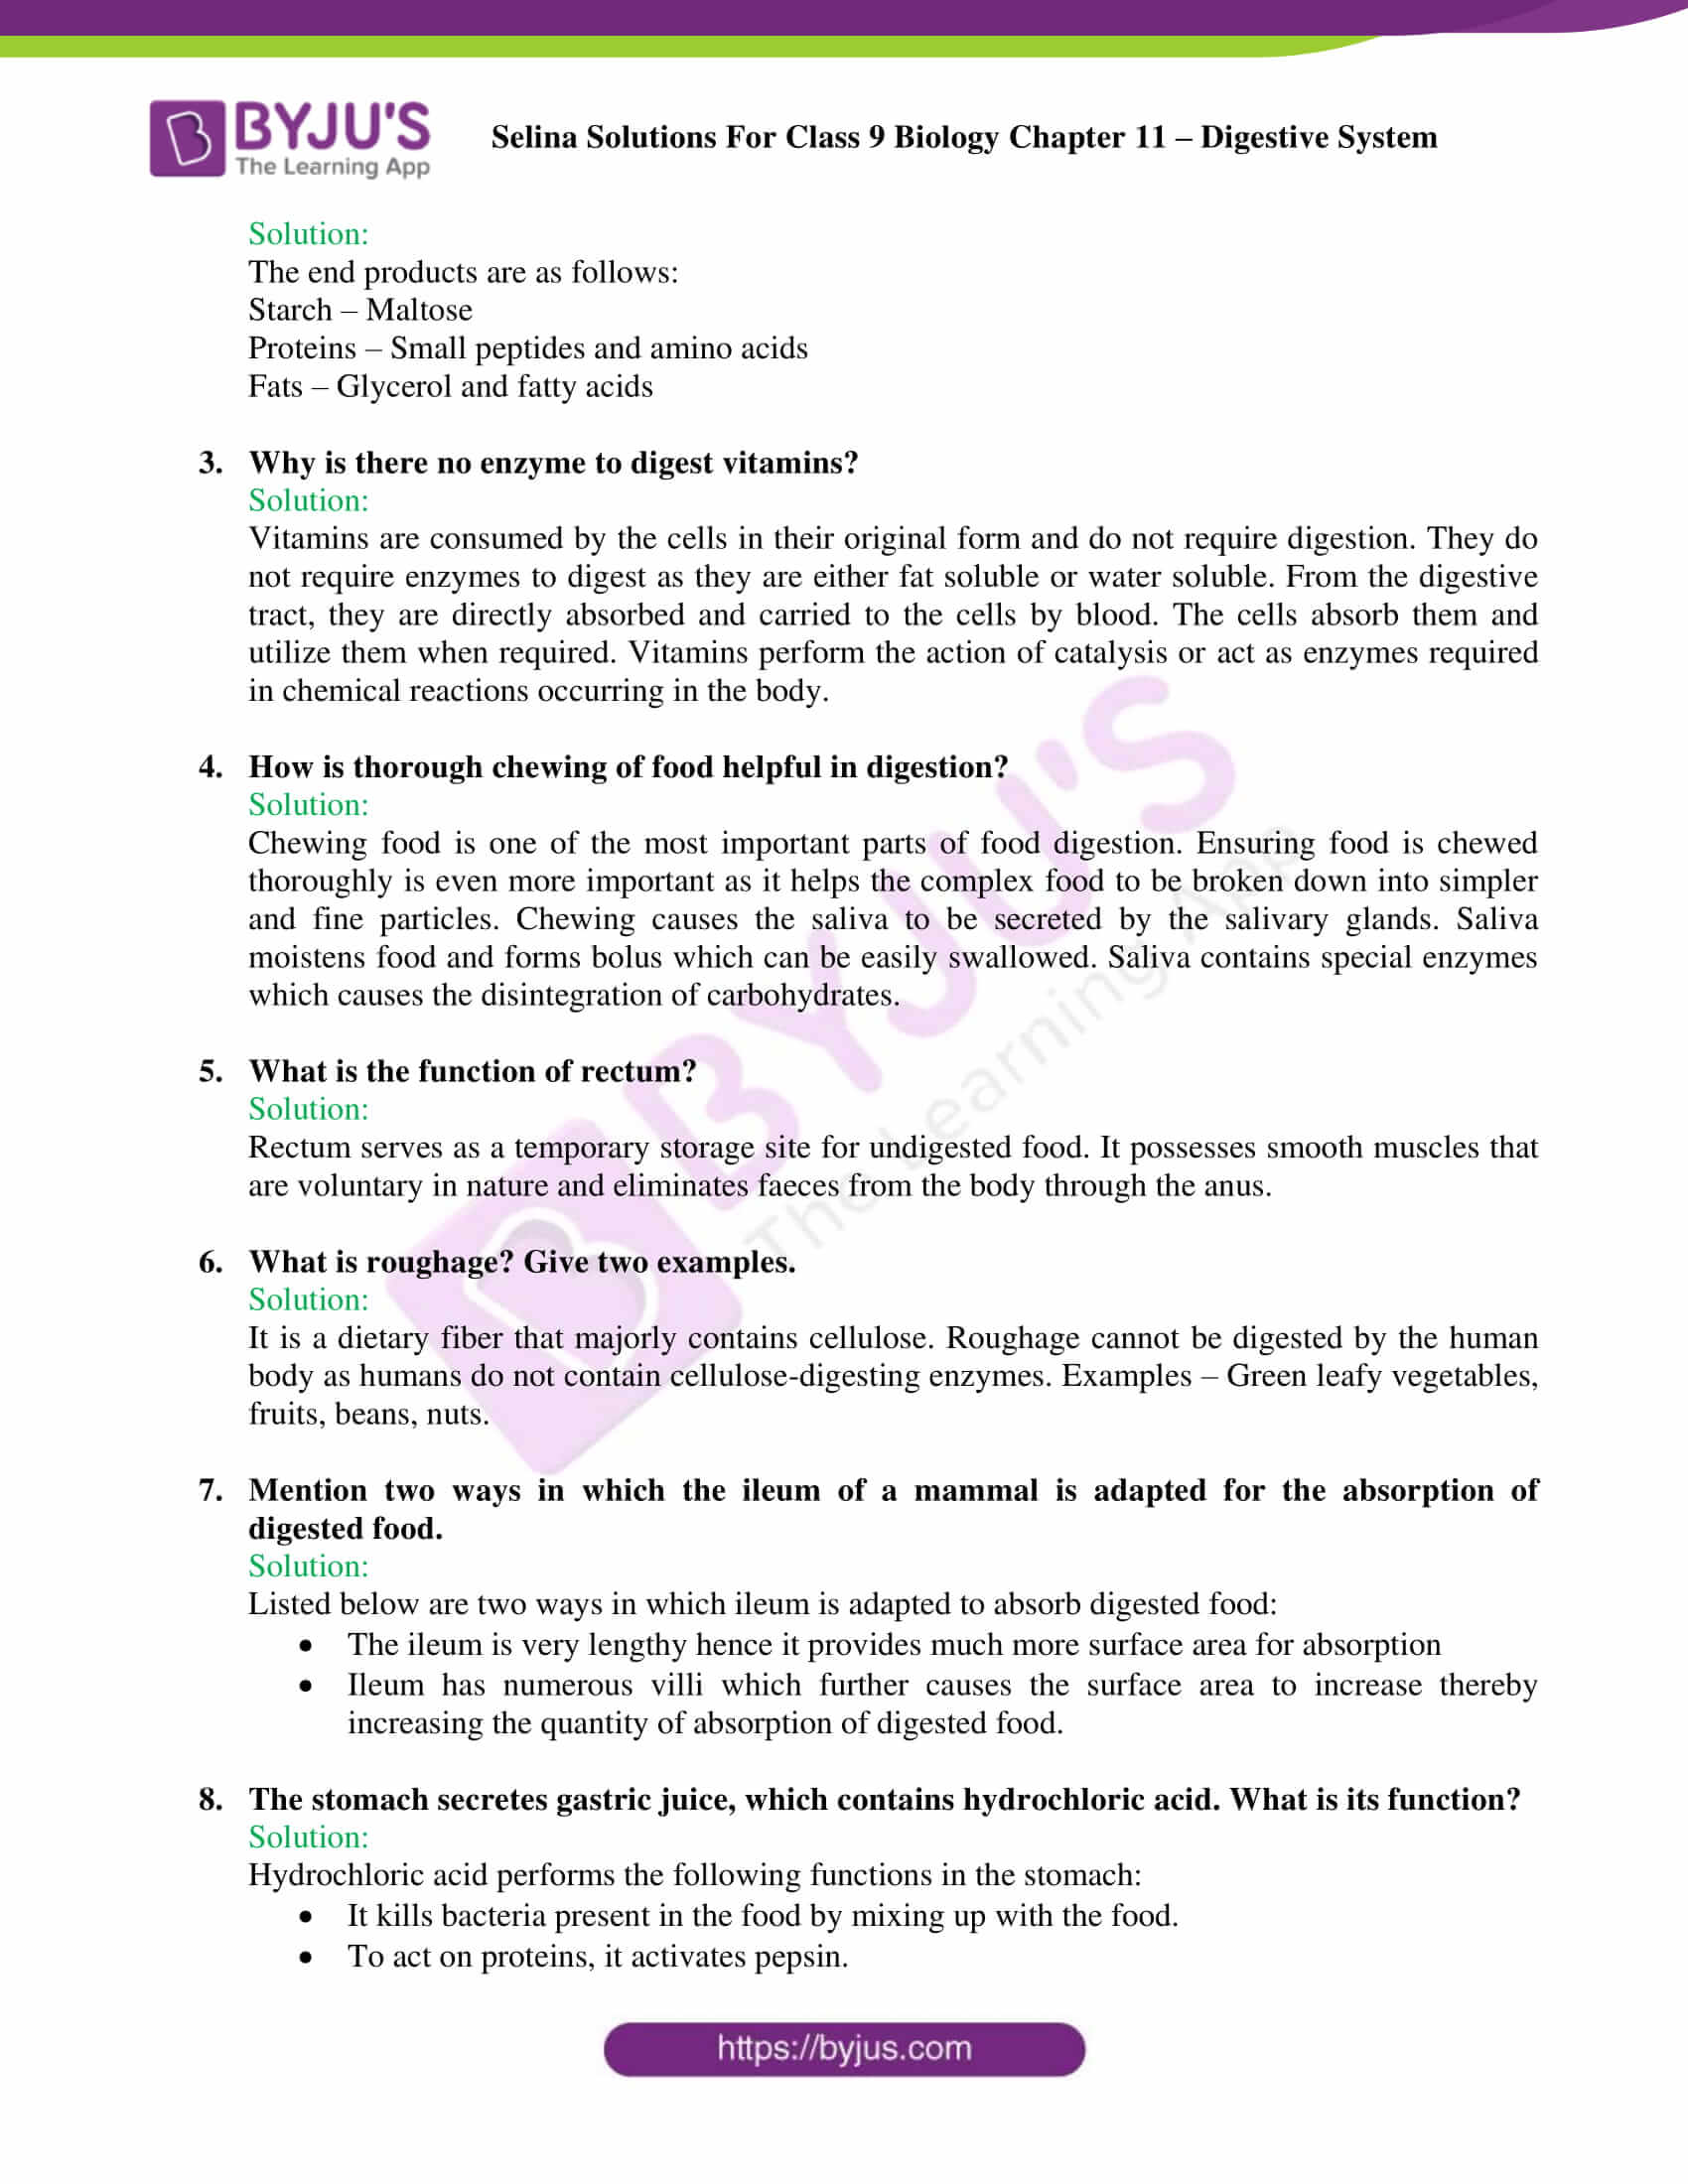 selina Solutions For Class 9 Biology Chapter 11 part 08